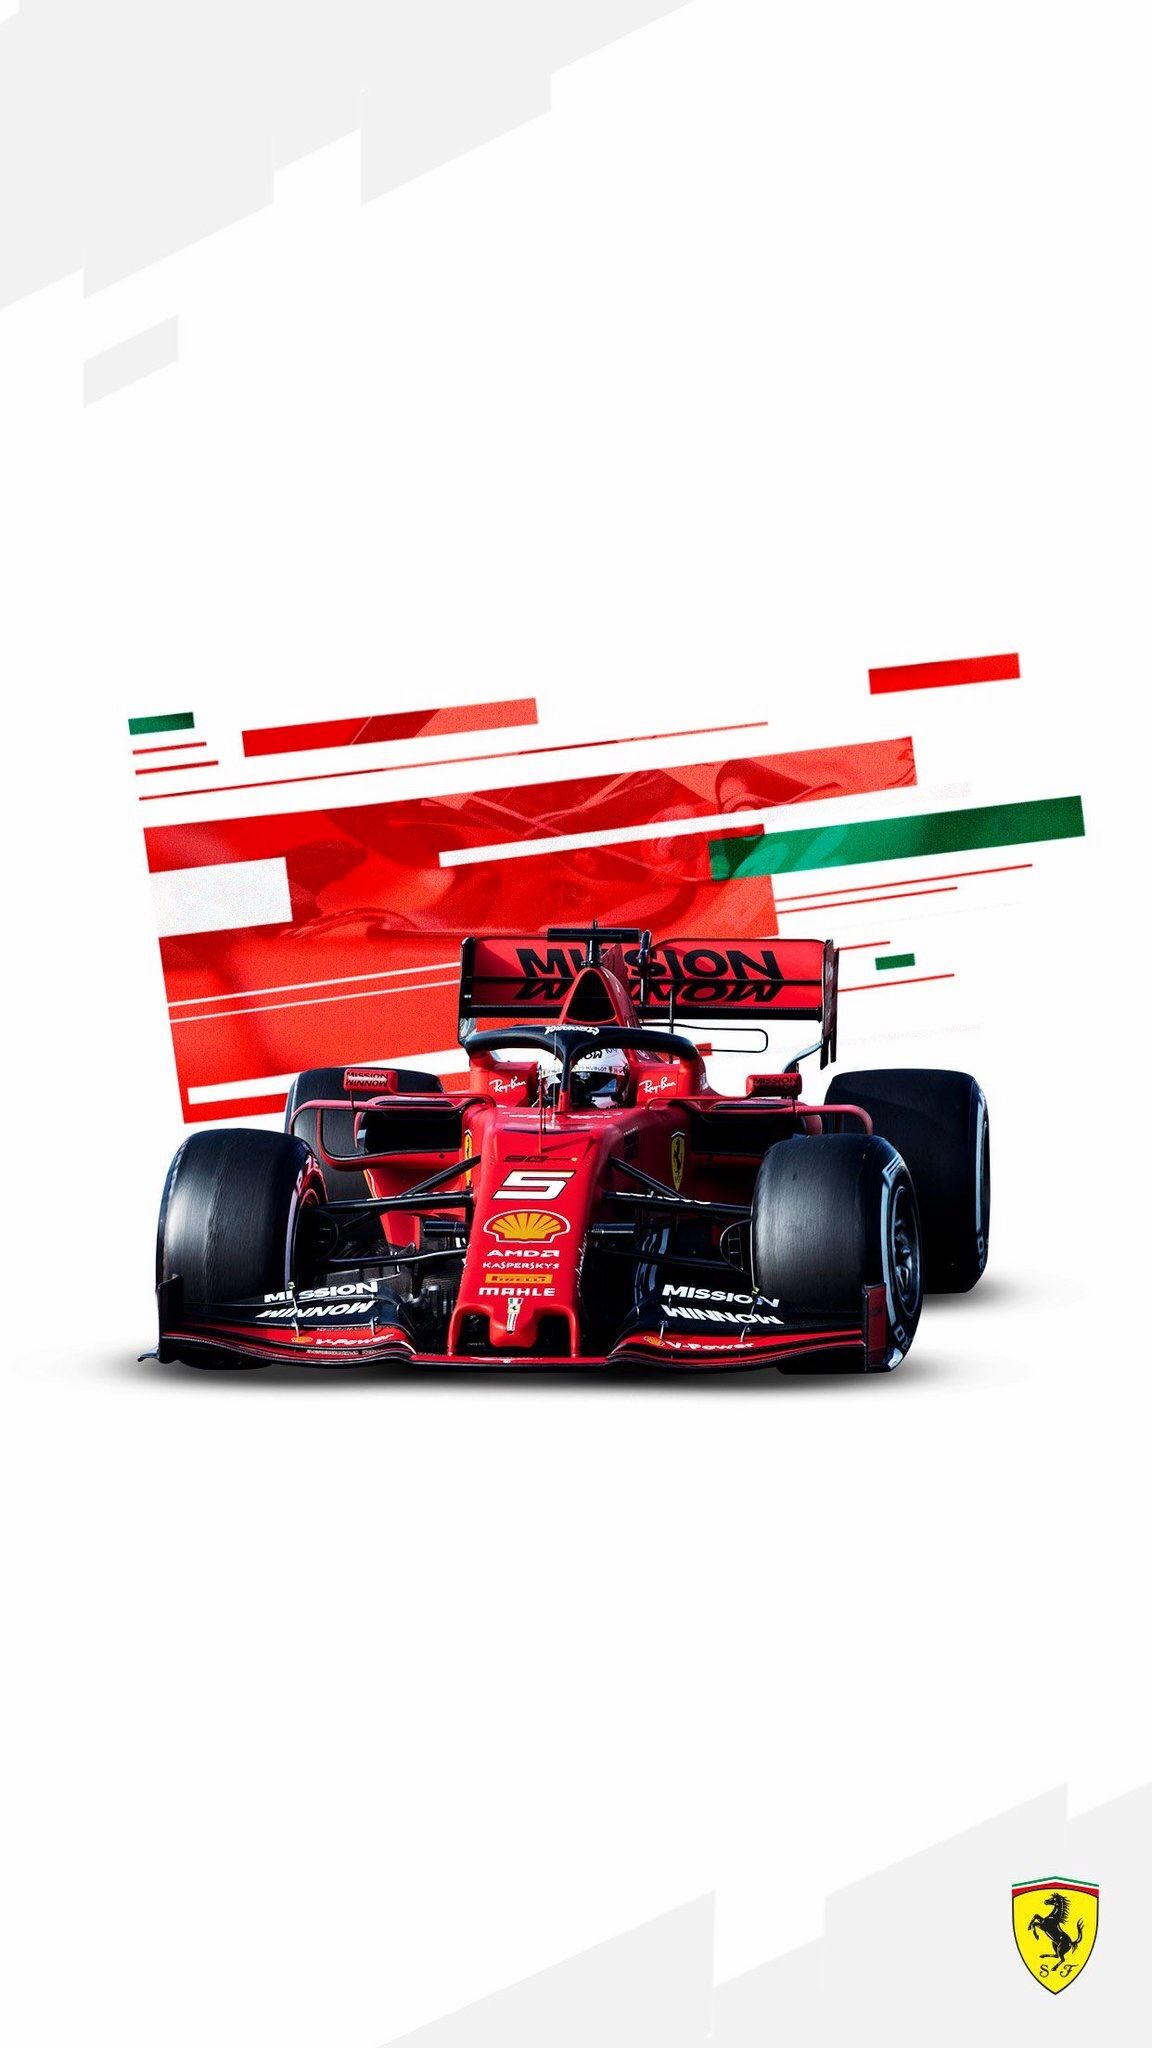 2019 2 23 Twitter Scuderiaferrari About Time You Had Some Wallpapers Of Sf90 In Action Right F1testing Esserefer Ferrari Ferrari F1 Formula Racing